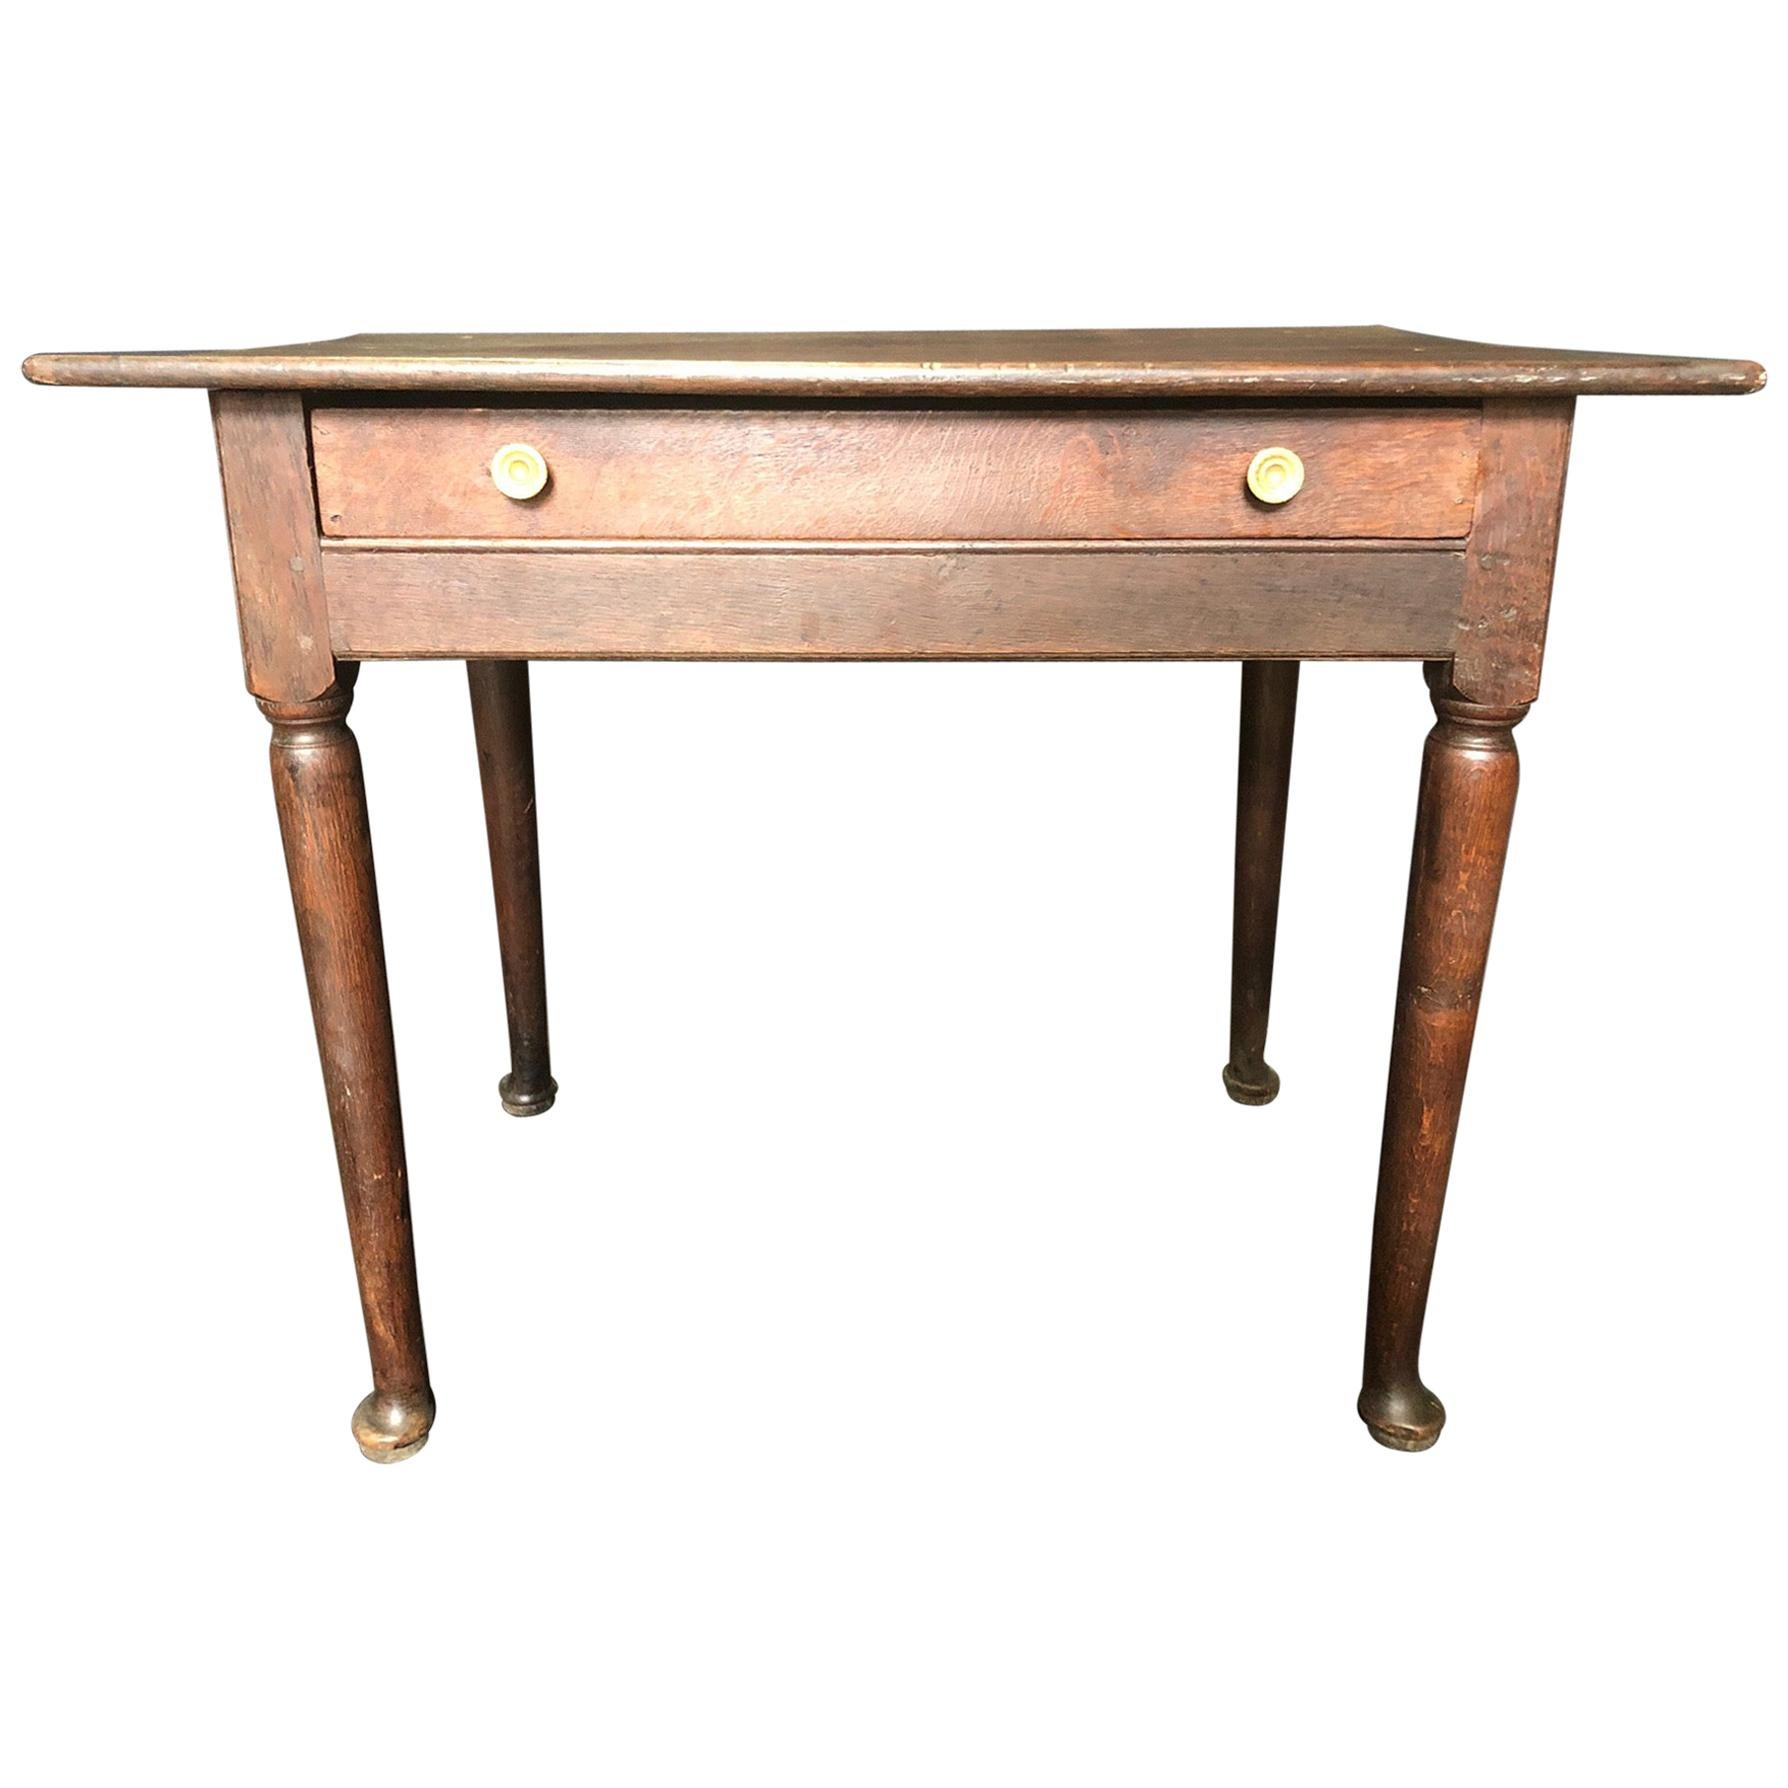 Super Early Continental Oak Side Table or Nightstand